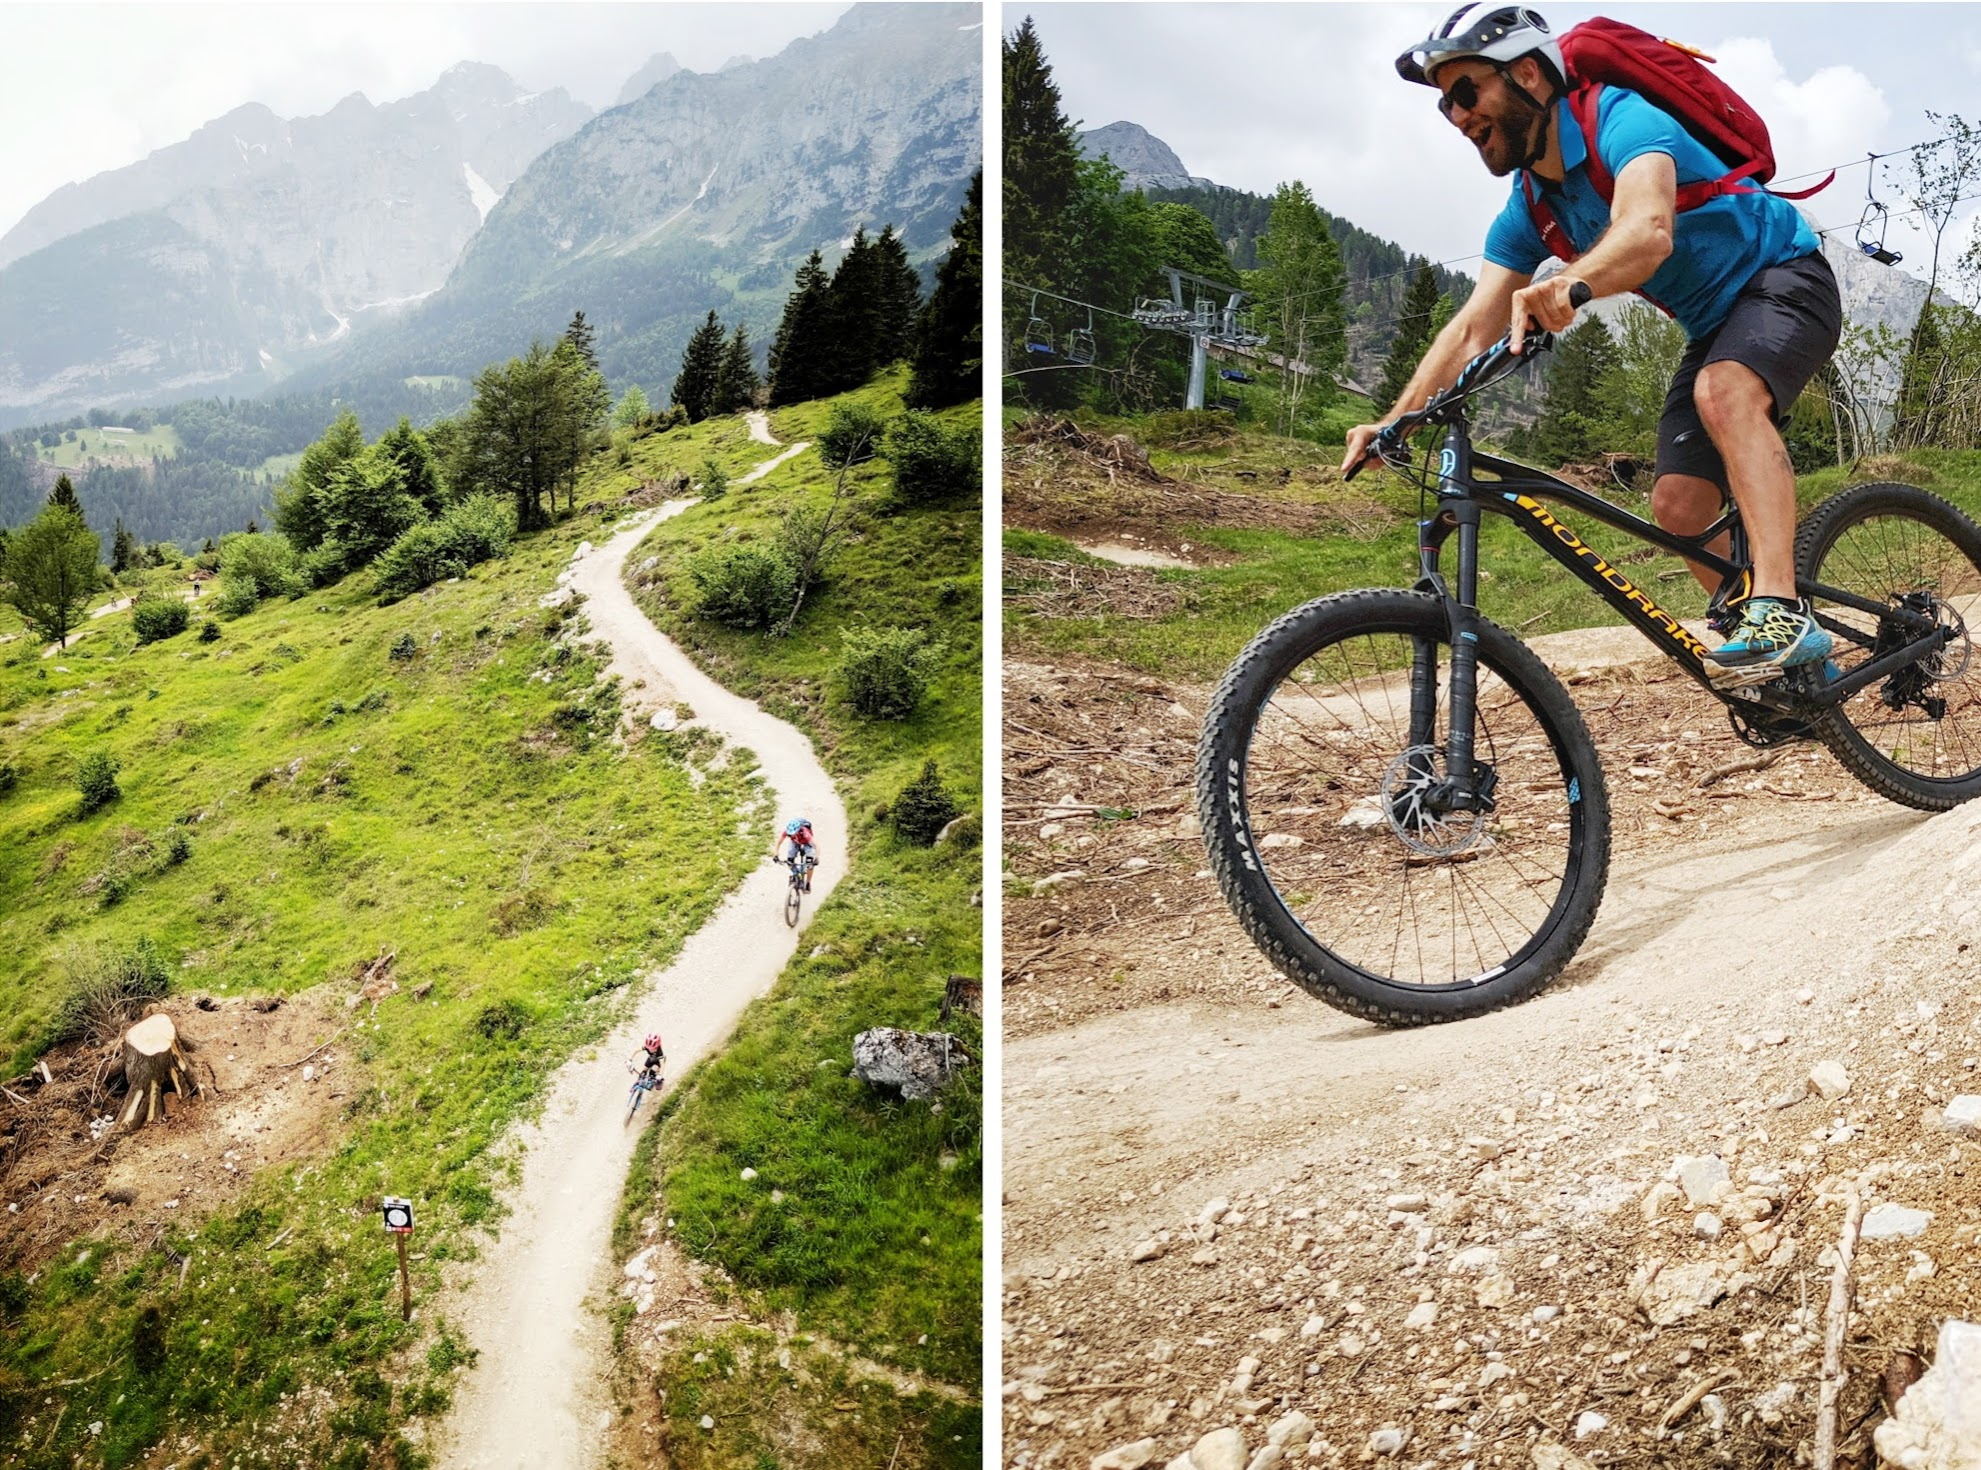 Mountain biking in the towns of Andalo, Dolomiti Paganella.